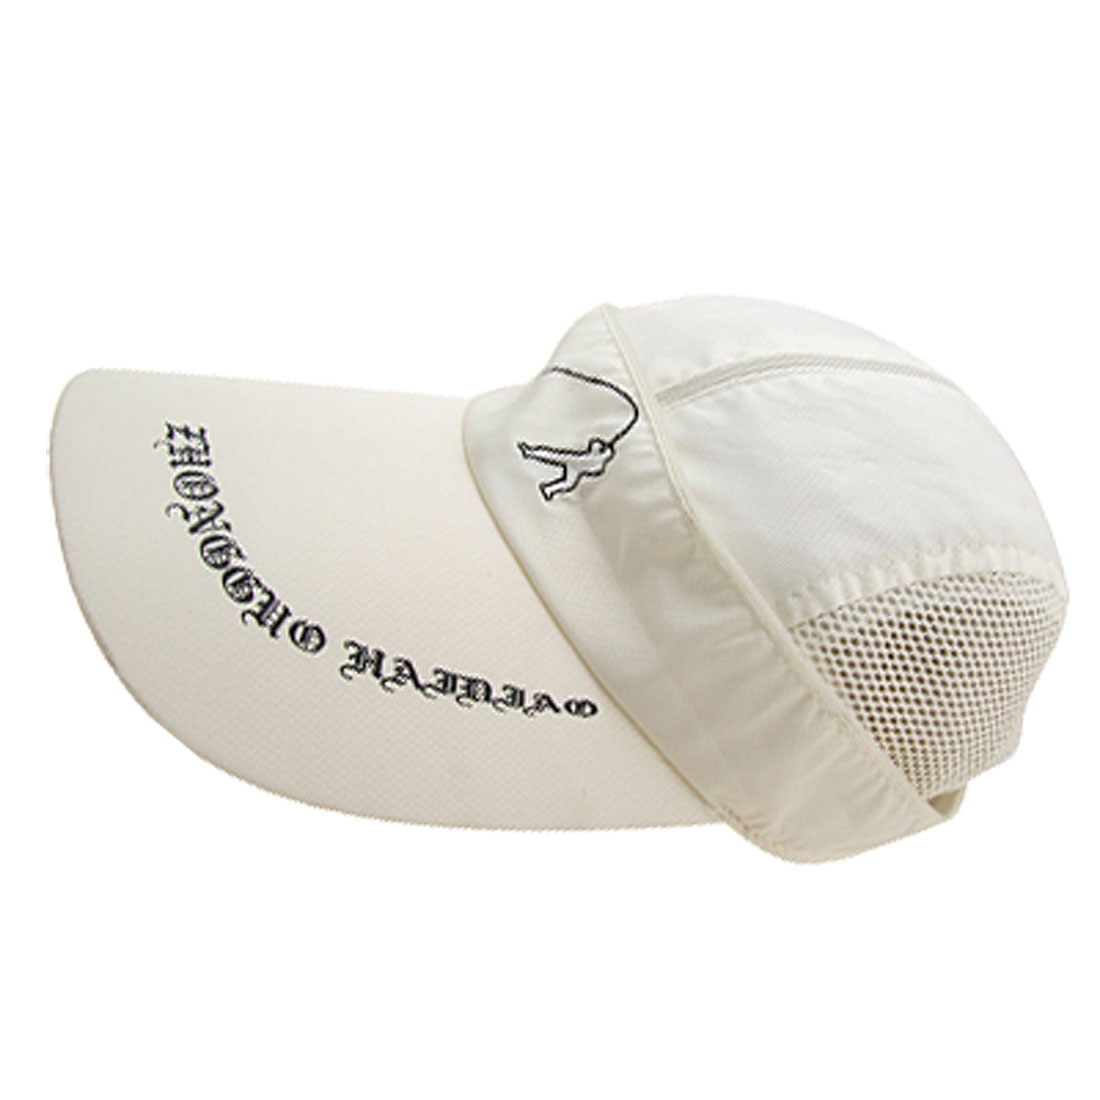 White Vintage Super Fisherman Fishing Mesh Trucker Hat Cap